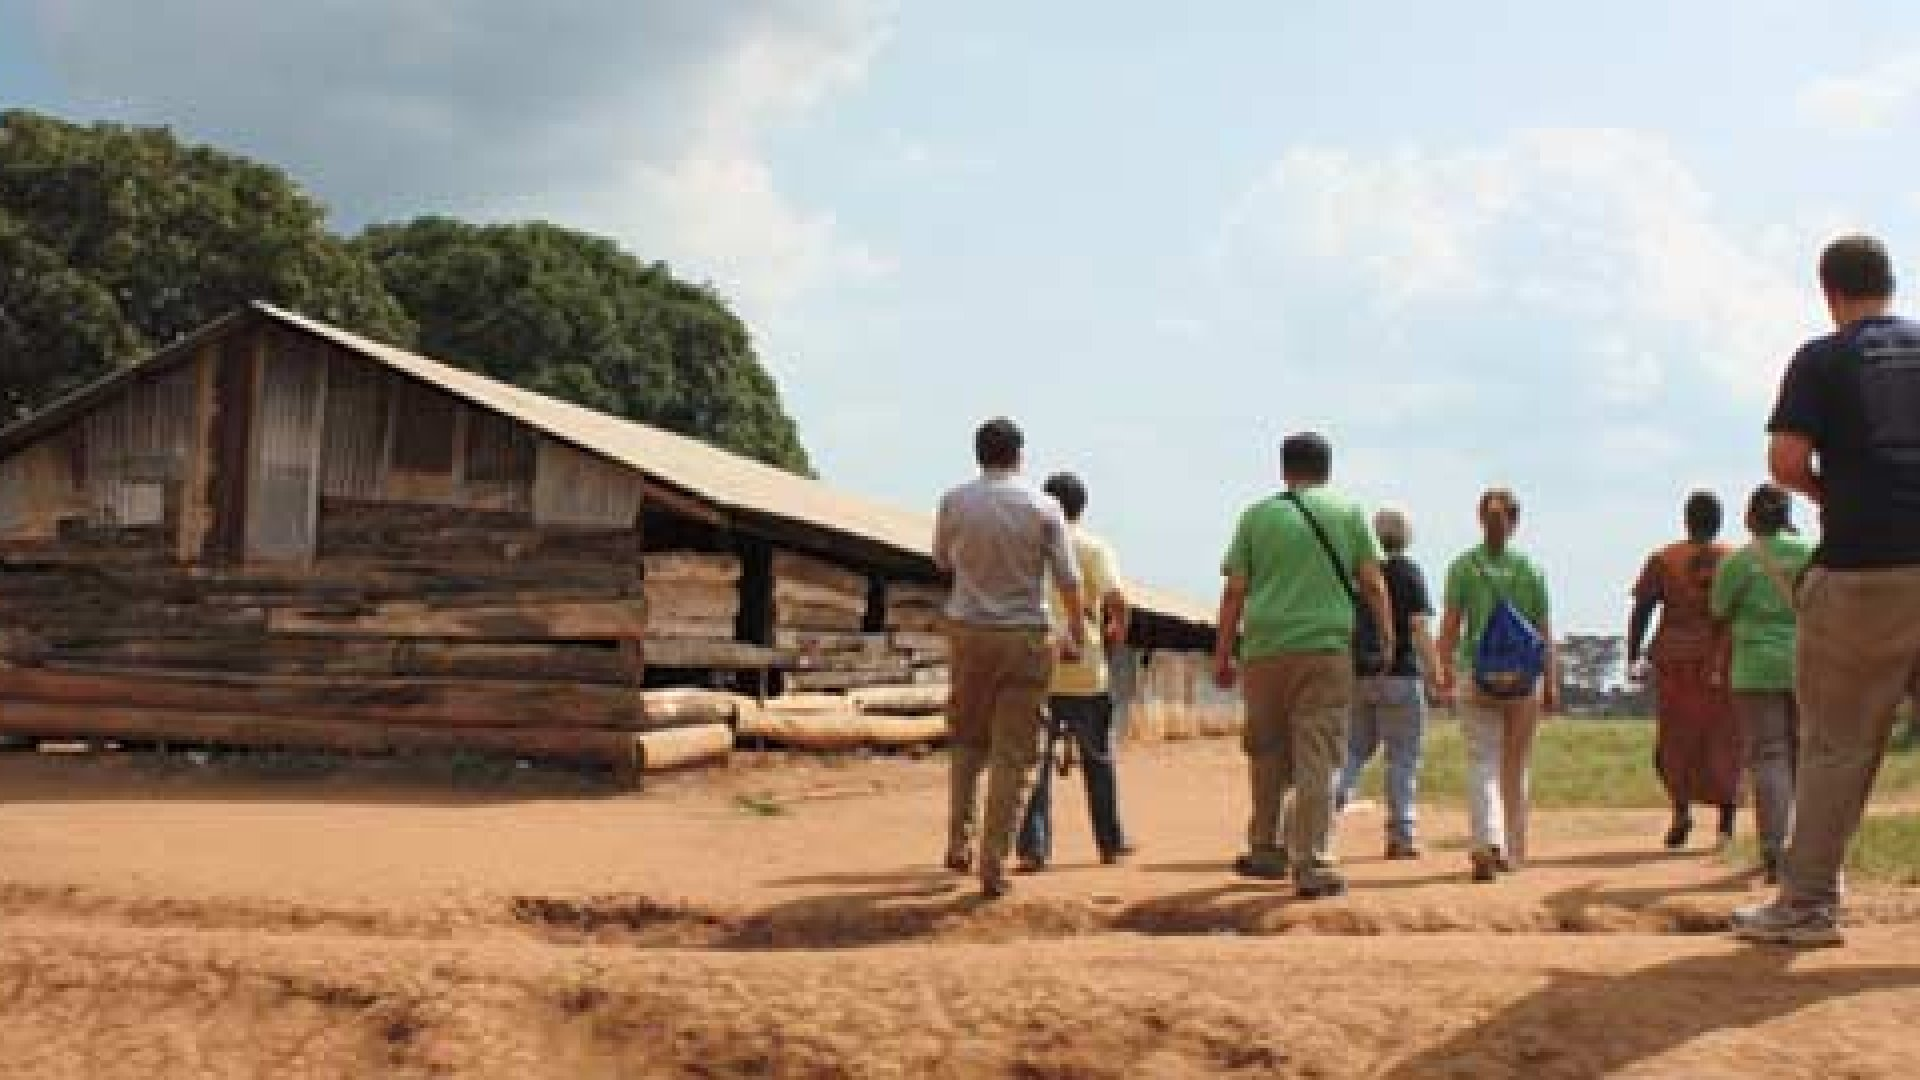 <b>Journey to Africa</b> Last summer, a group of employees from Better World Books visited a temporary classroom in Gulu, Uganda.